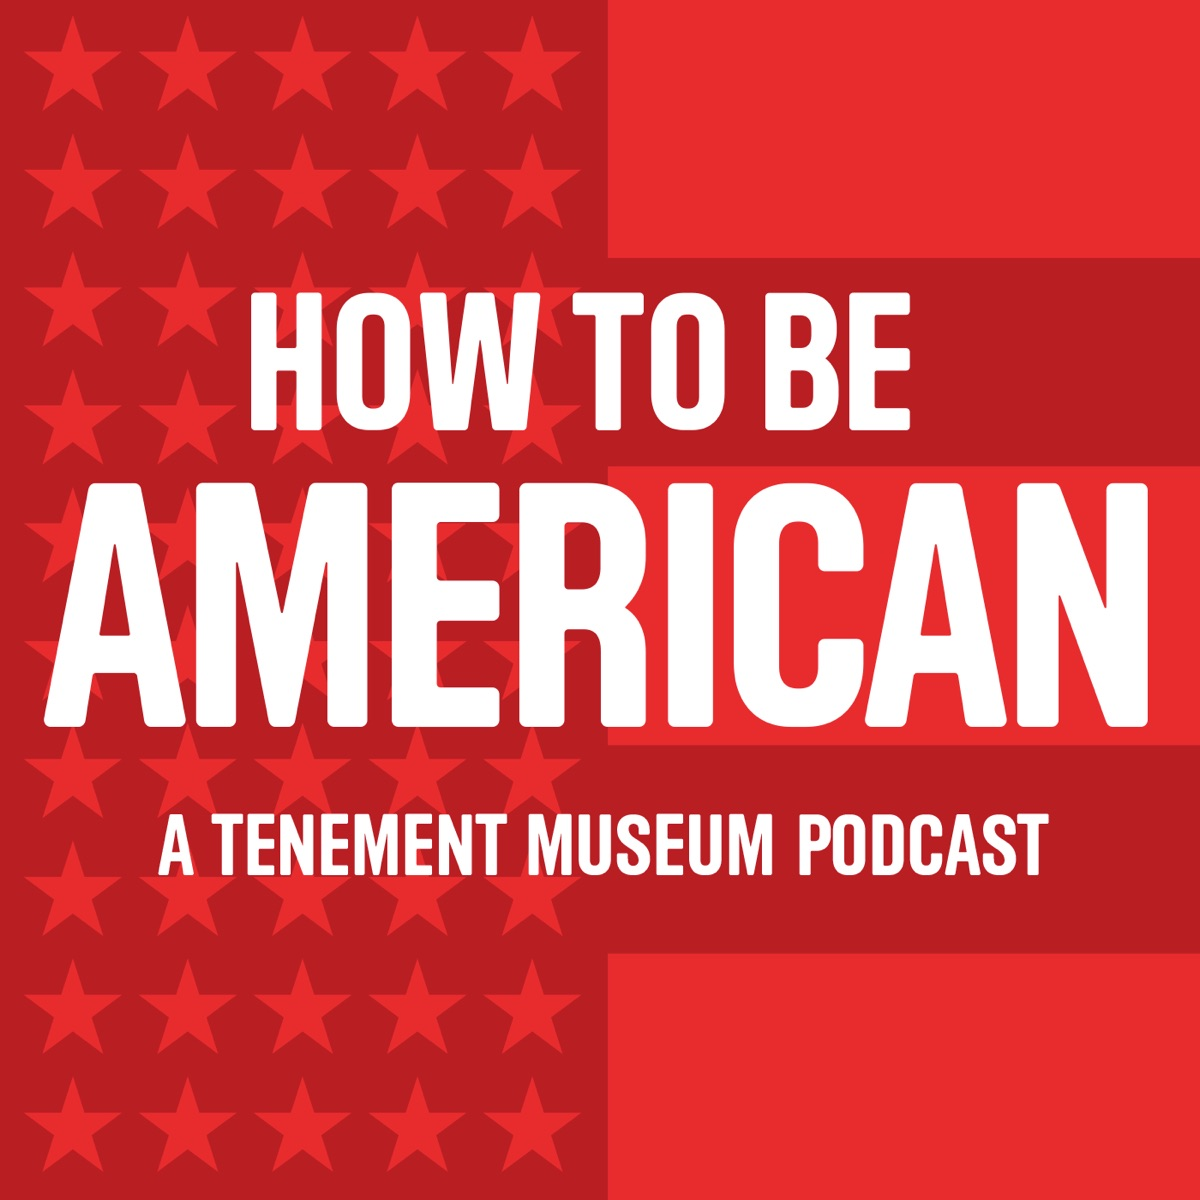 How To Be American